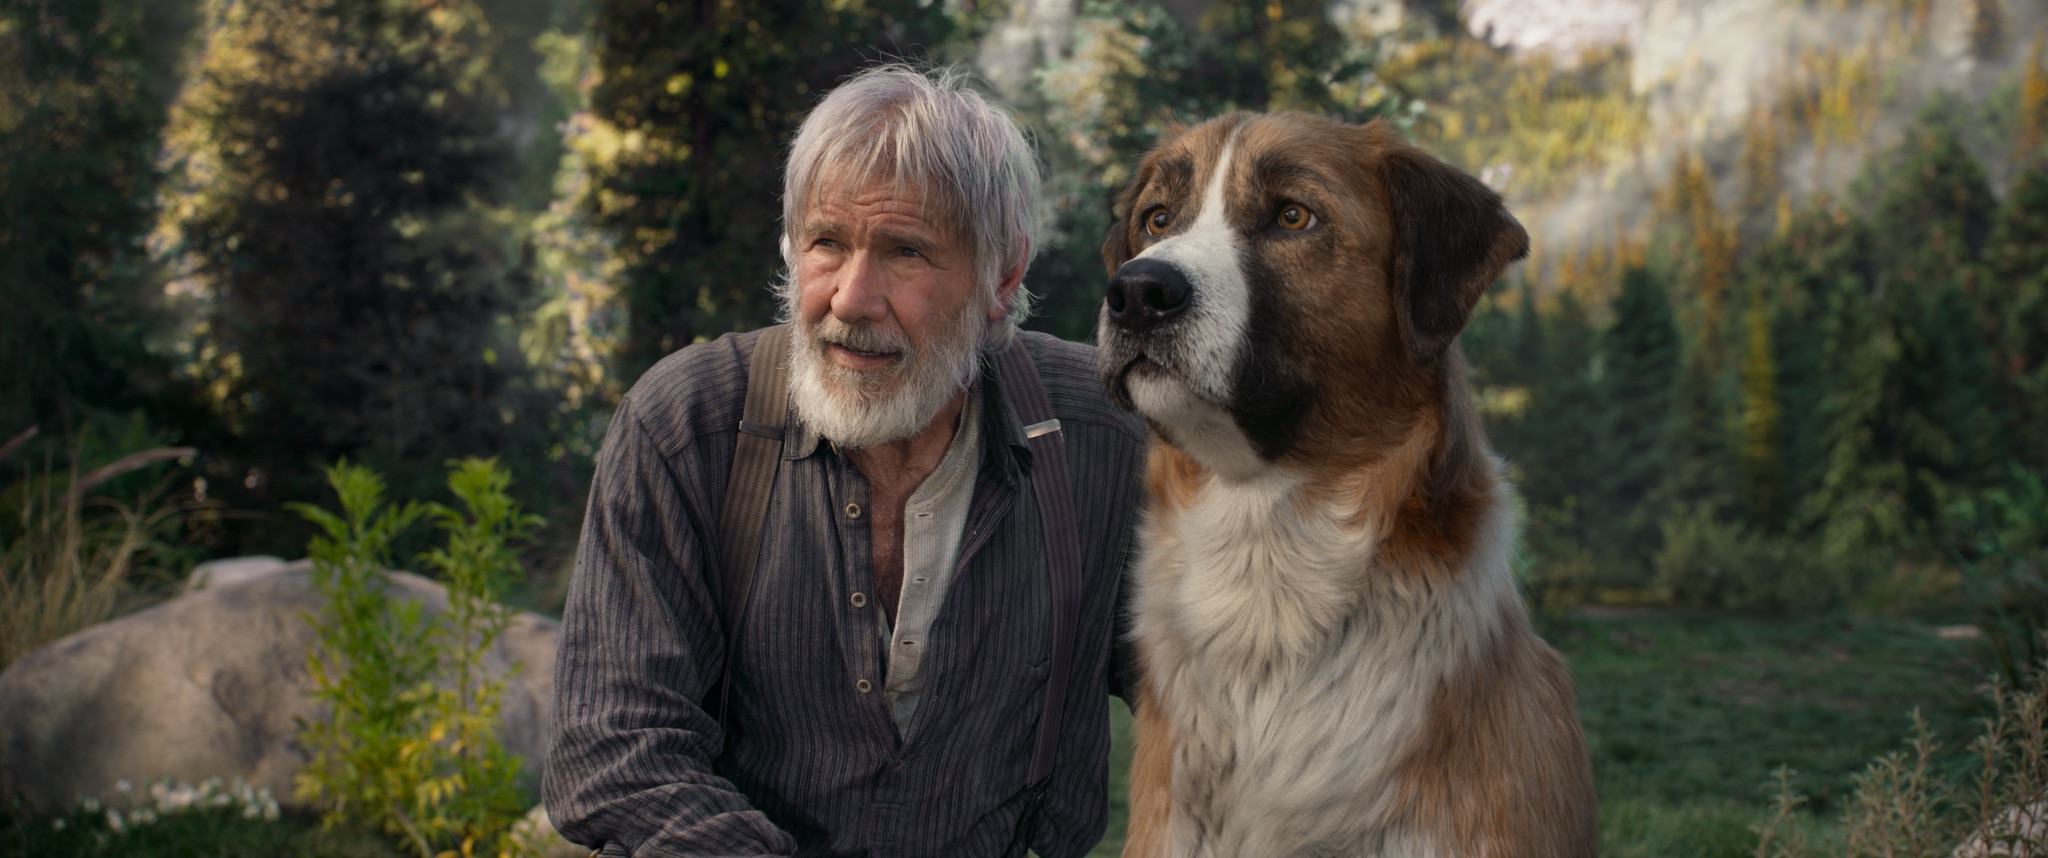 The Call of the Wild Film to Star Harrison Ford